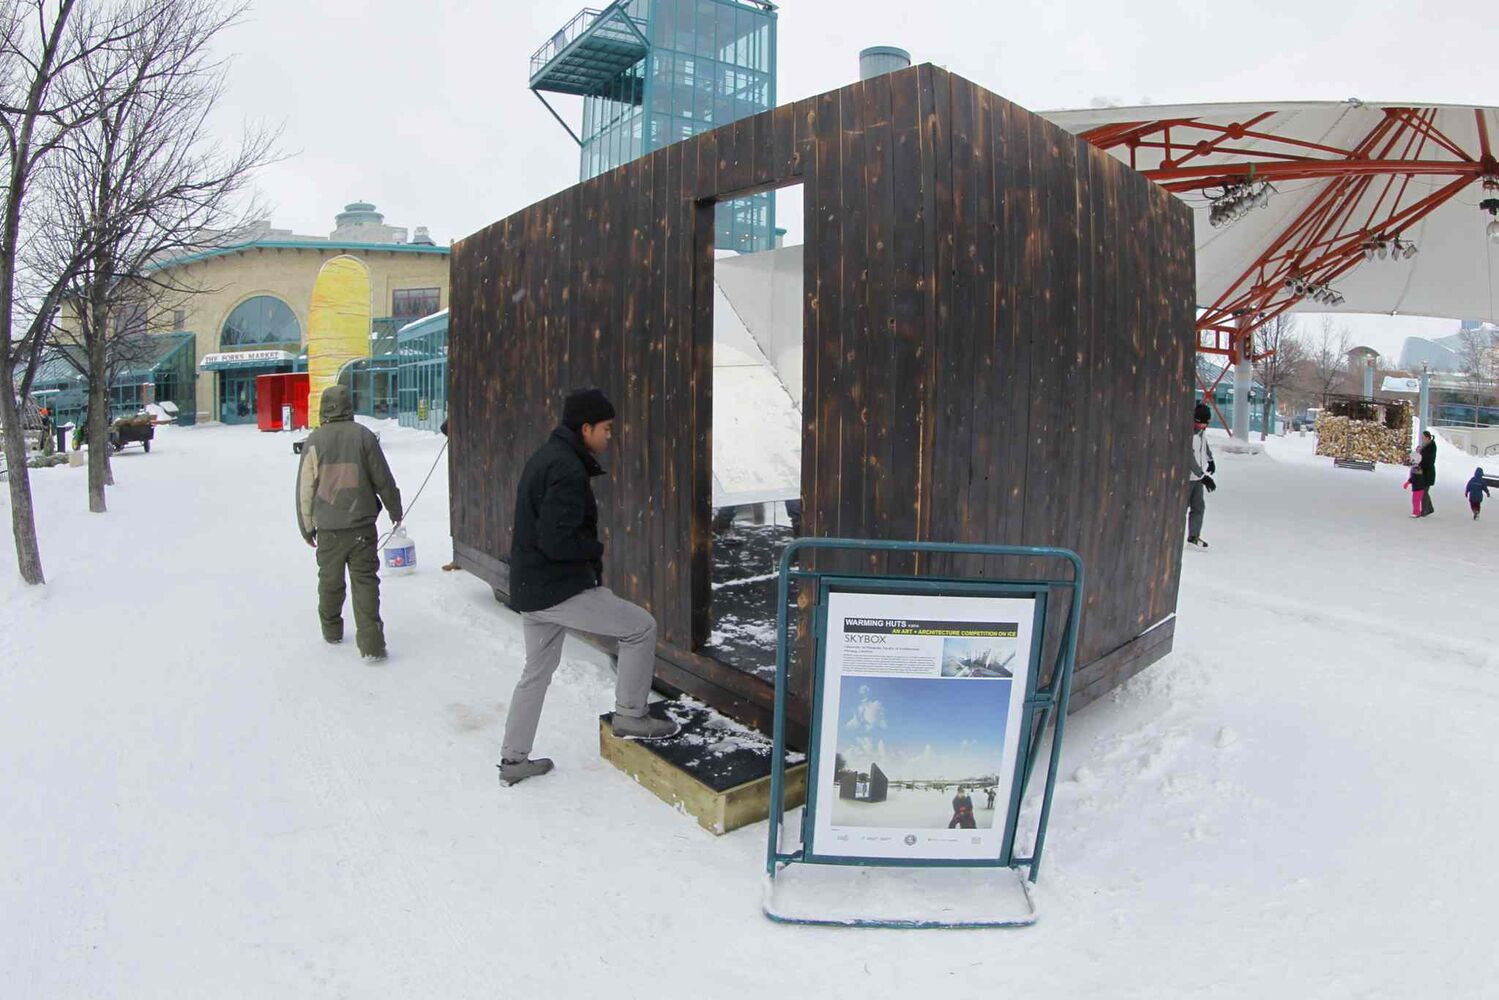 The winning warming hut design, Skybox, sits on display at the Forks Friday. (BORIS MINKEVICH / WINNIPEG FREE PRESS)